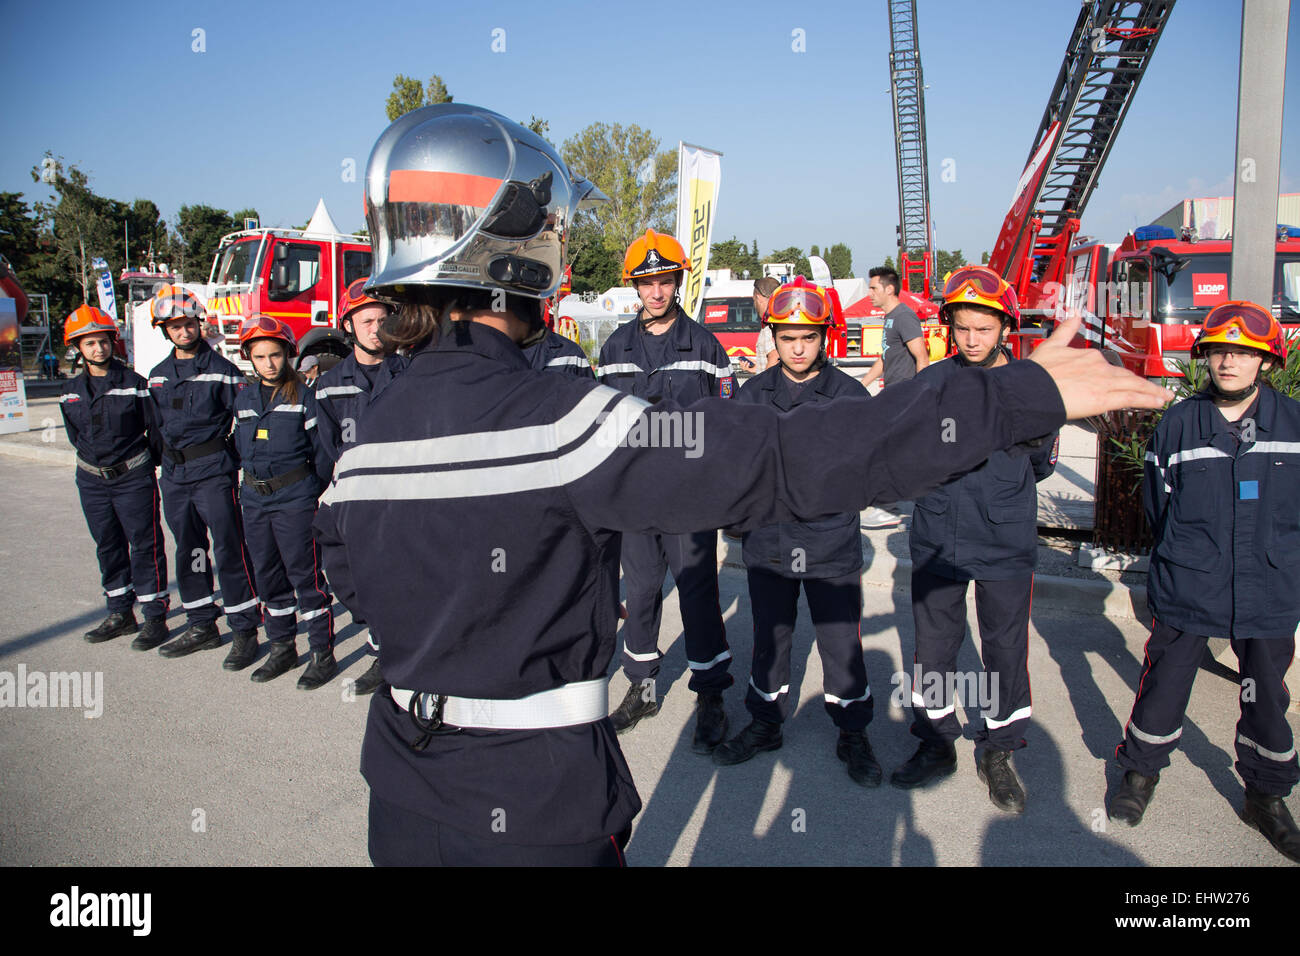 YOUNG FIREFIGHTER - Stock Image